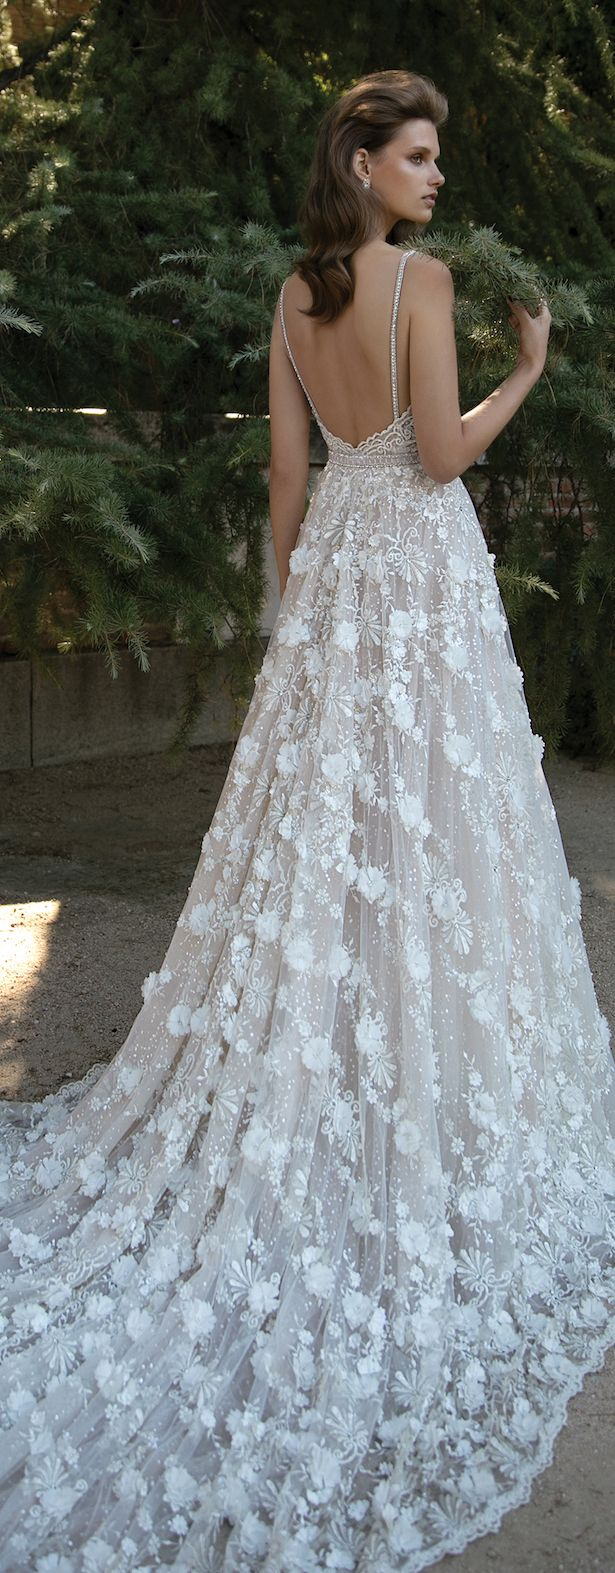 4292 best Wedding dresses All things wedding images on Pinterest ...